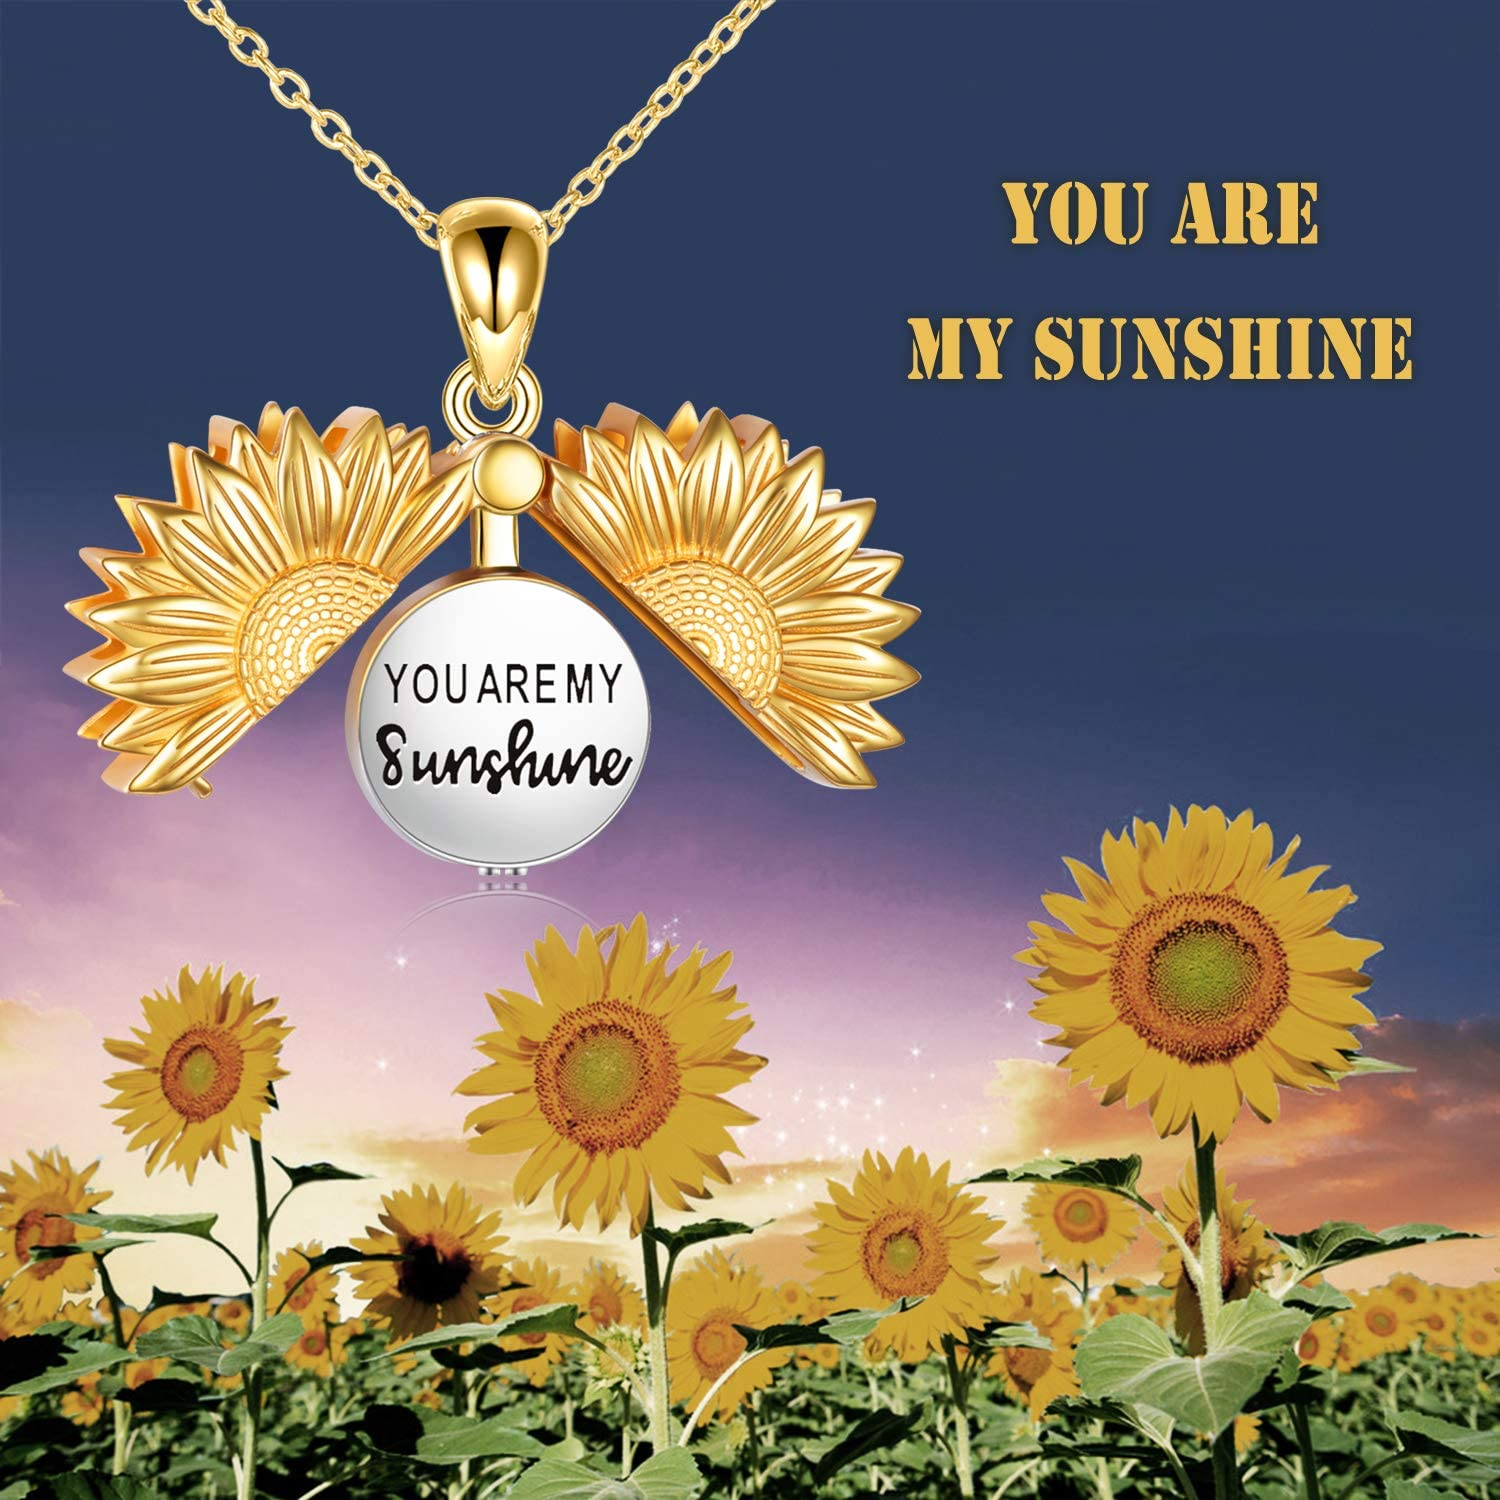 URONE Personalized Sterling Silver Sunflower Urn Necklace for Ashes Custom Engraving Cremation Jewelry for Ashes of Loved Ones Keepsake